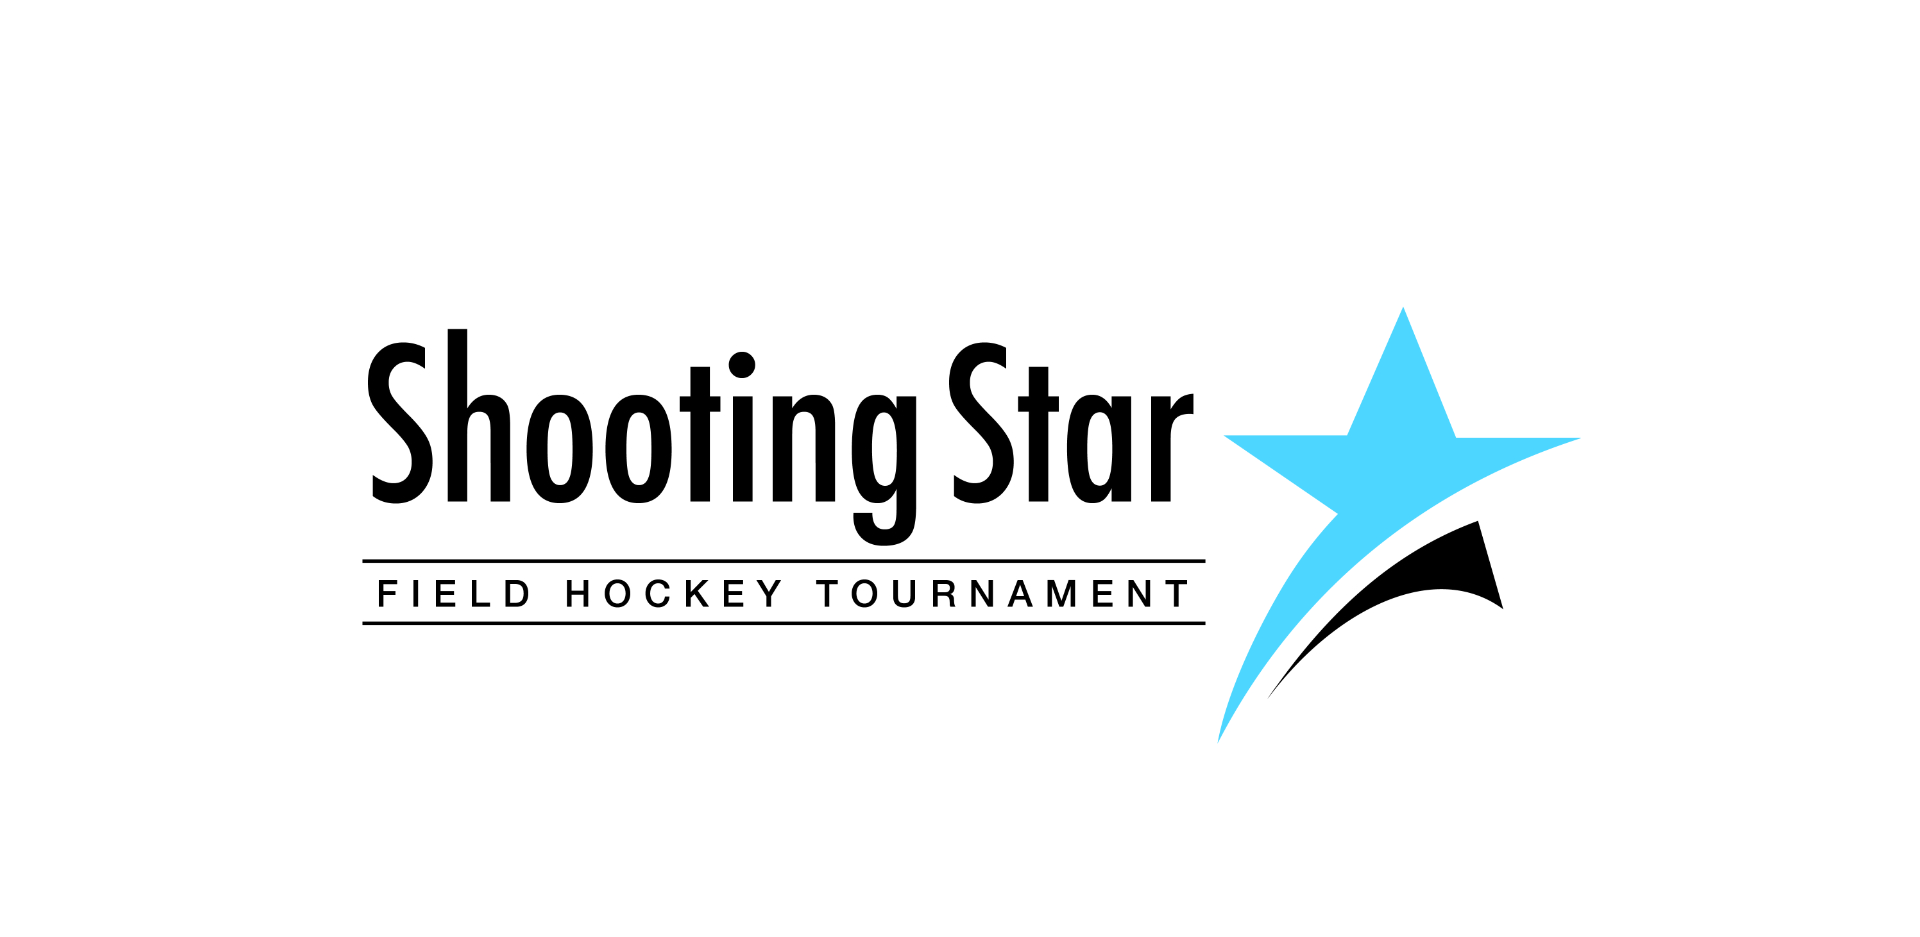 Shooting Star Field Hockey Tournament